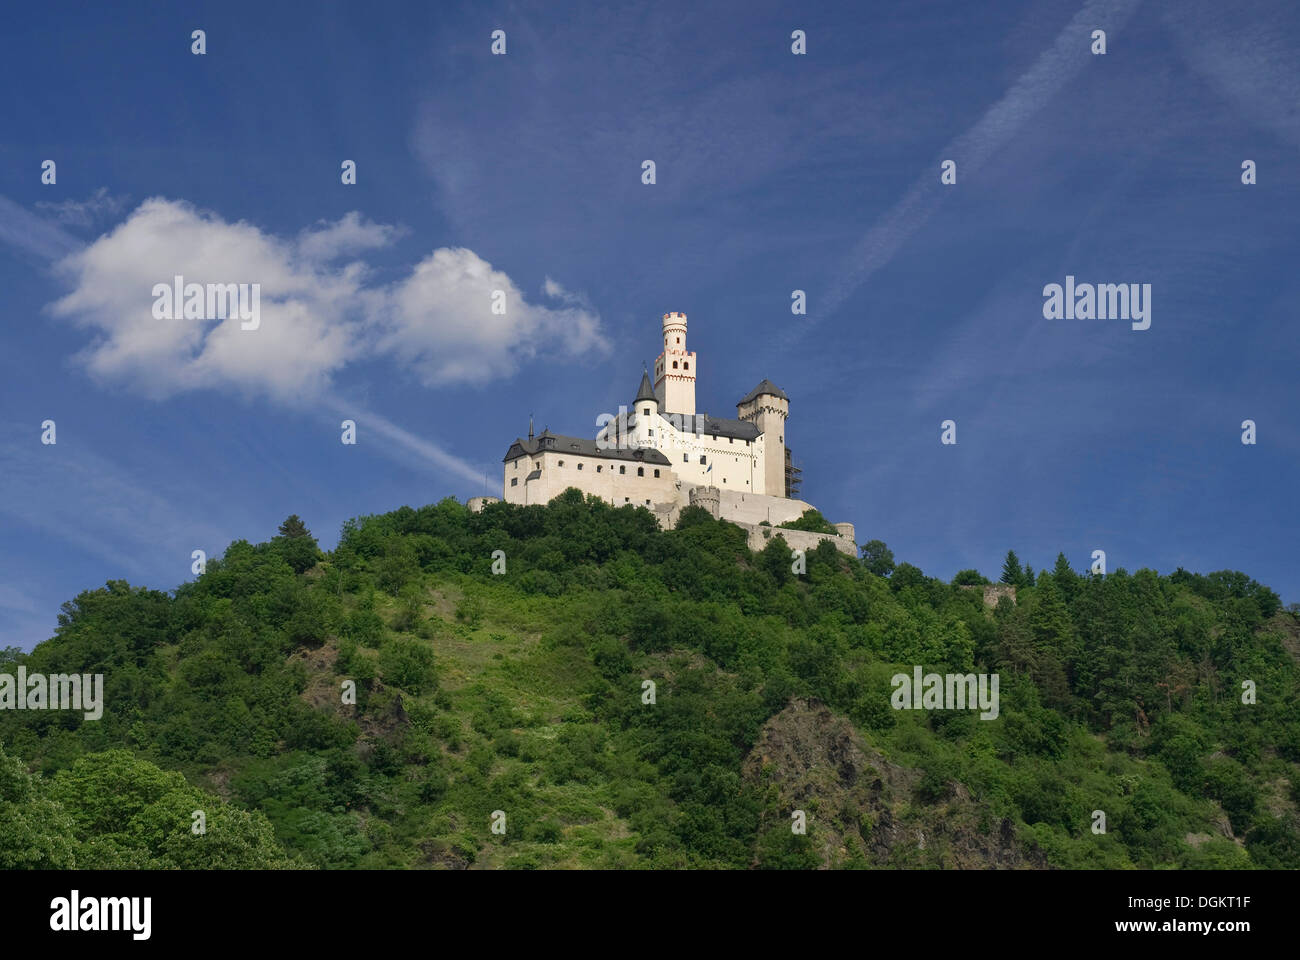 Romantic Marksburg castle in Braubach, seat of the German Castle Association eV, DBV, UNESCO World Heritage Site Oberes - Stock Image